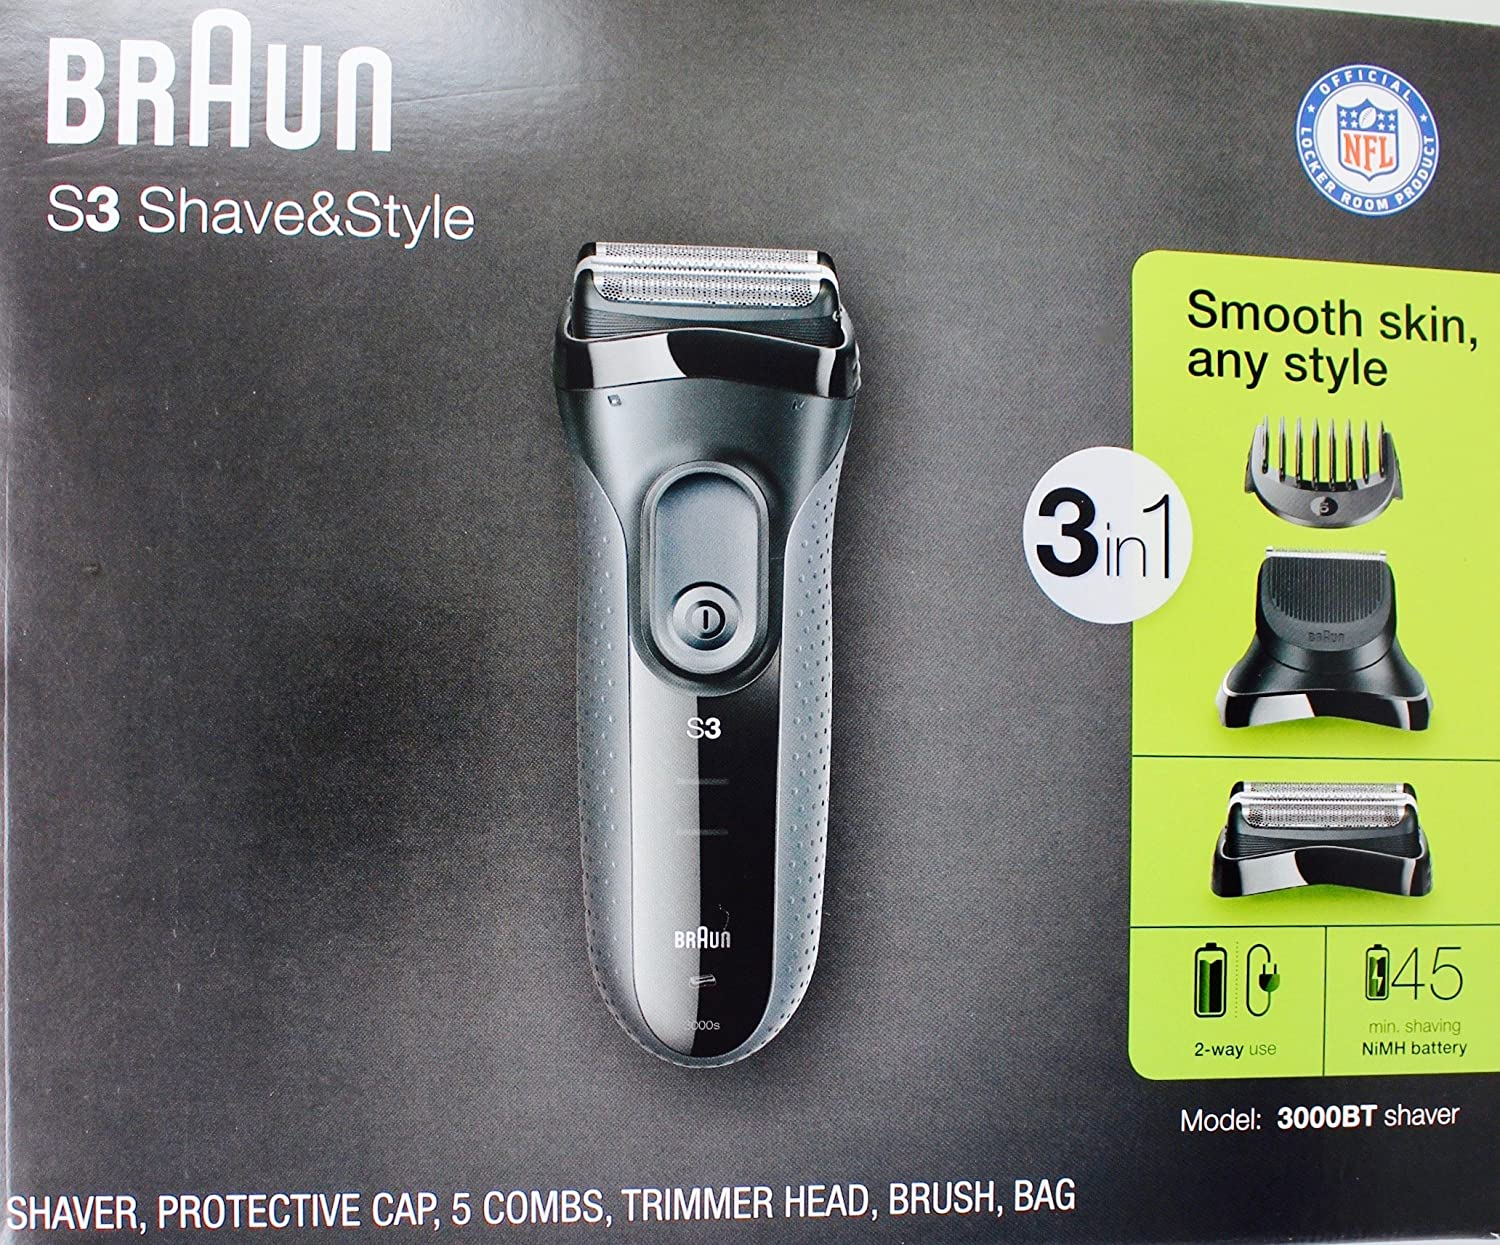 Braun 3-in-1 Shaver S3, Model 3000BT